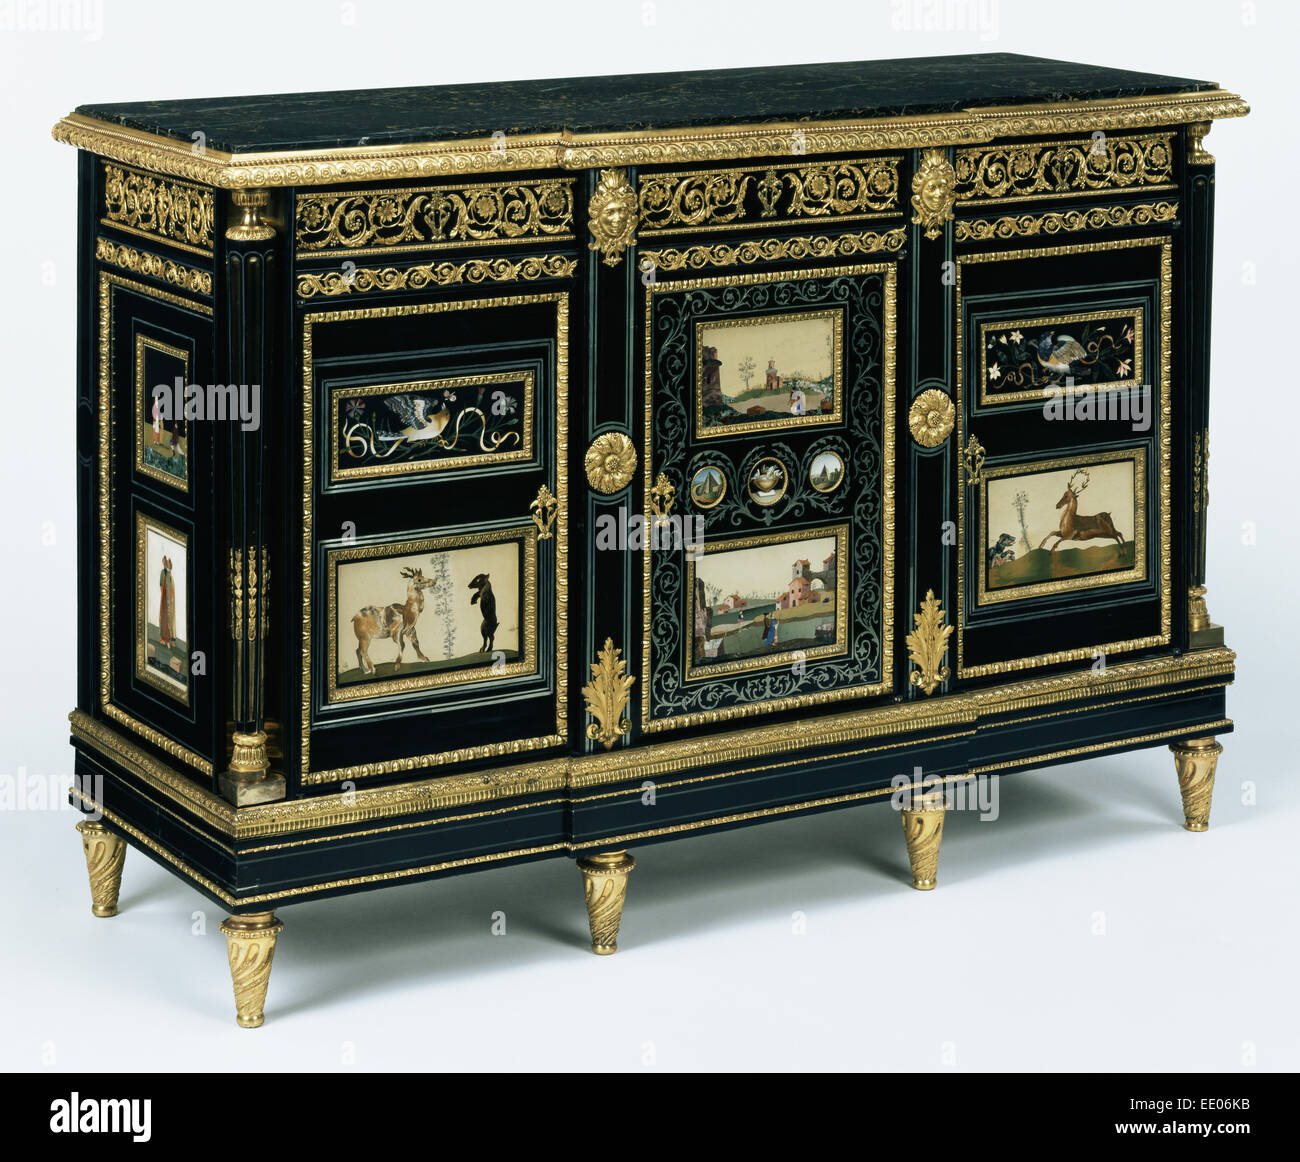 Cabinet (one of a pair); Attributed to Adam Weisweiler, French, 1744 - 1820, master 1778, active until 1809; Paris, - Stock Image